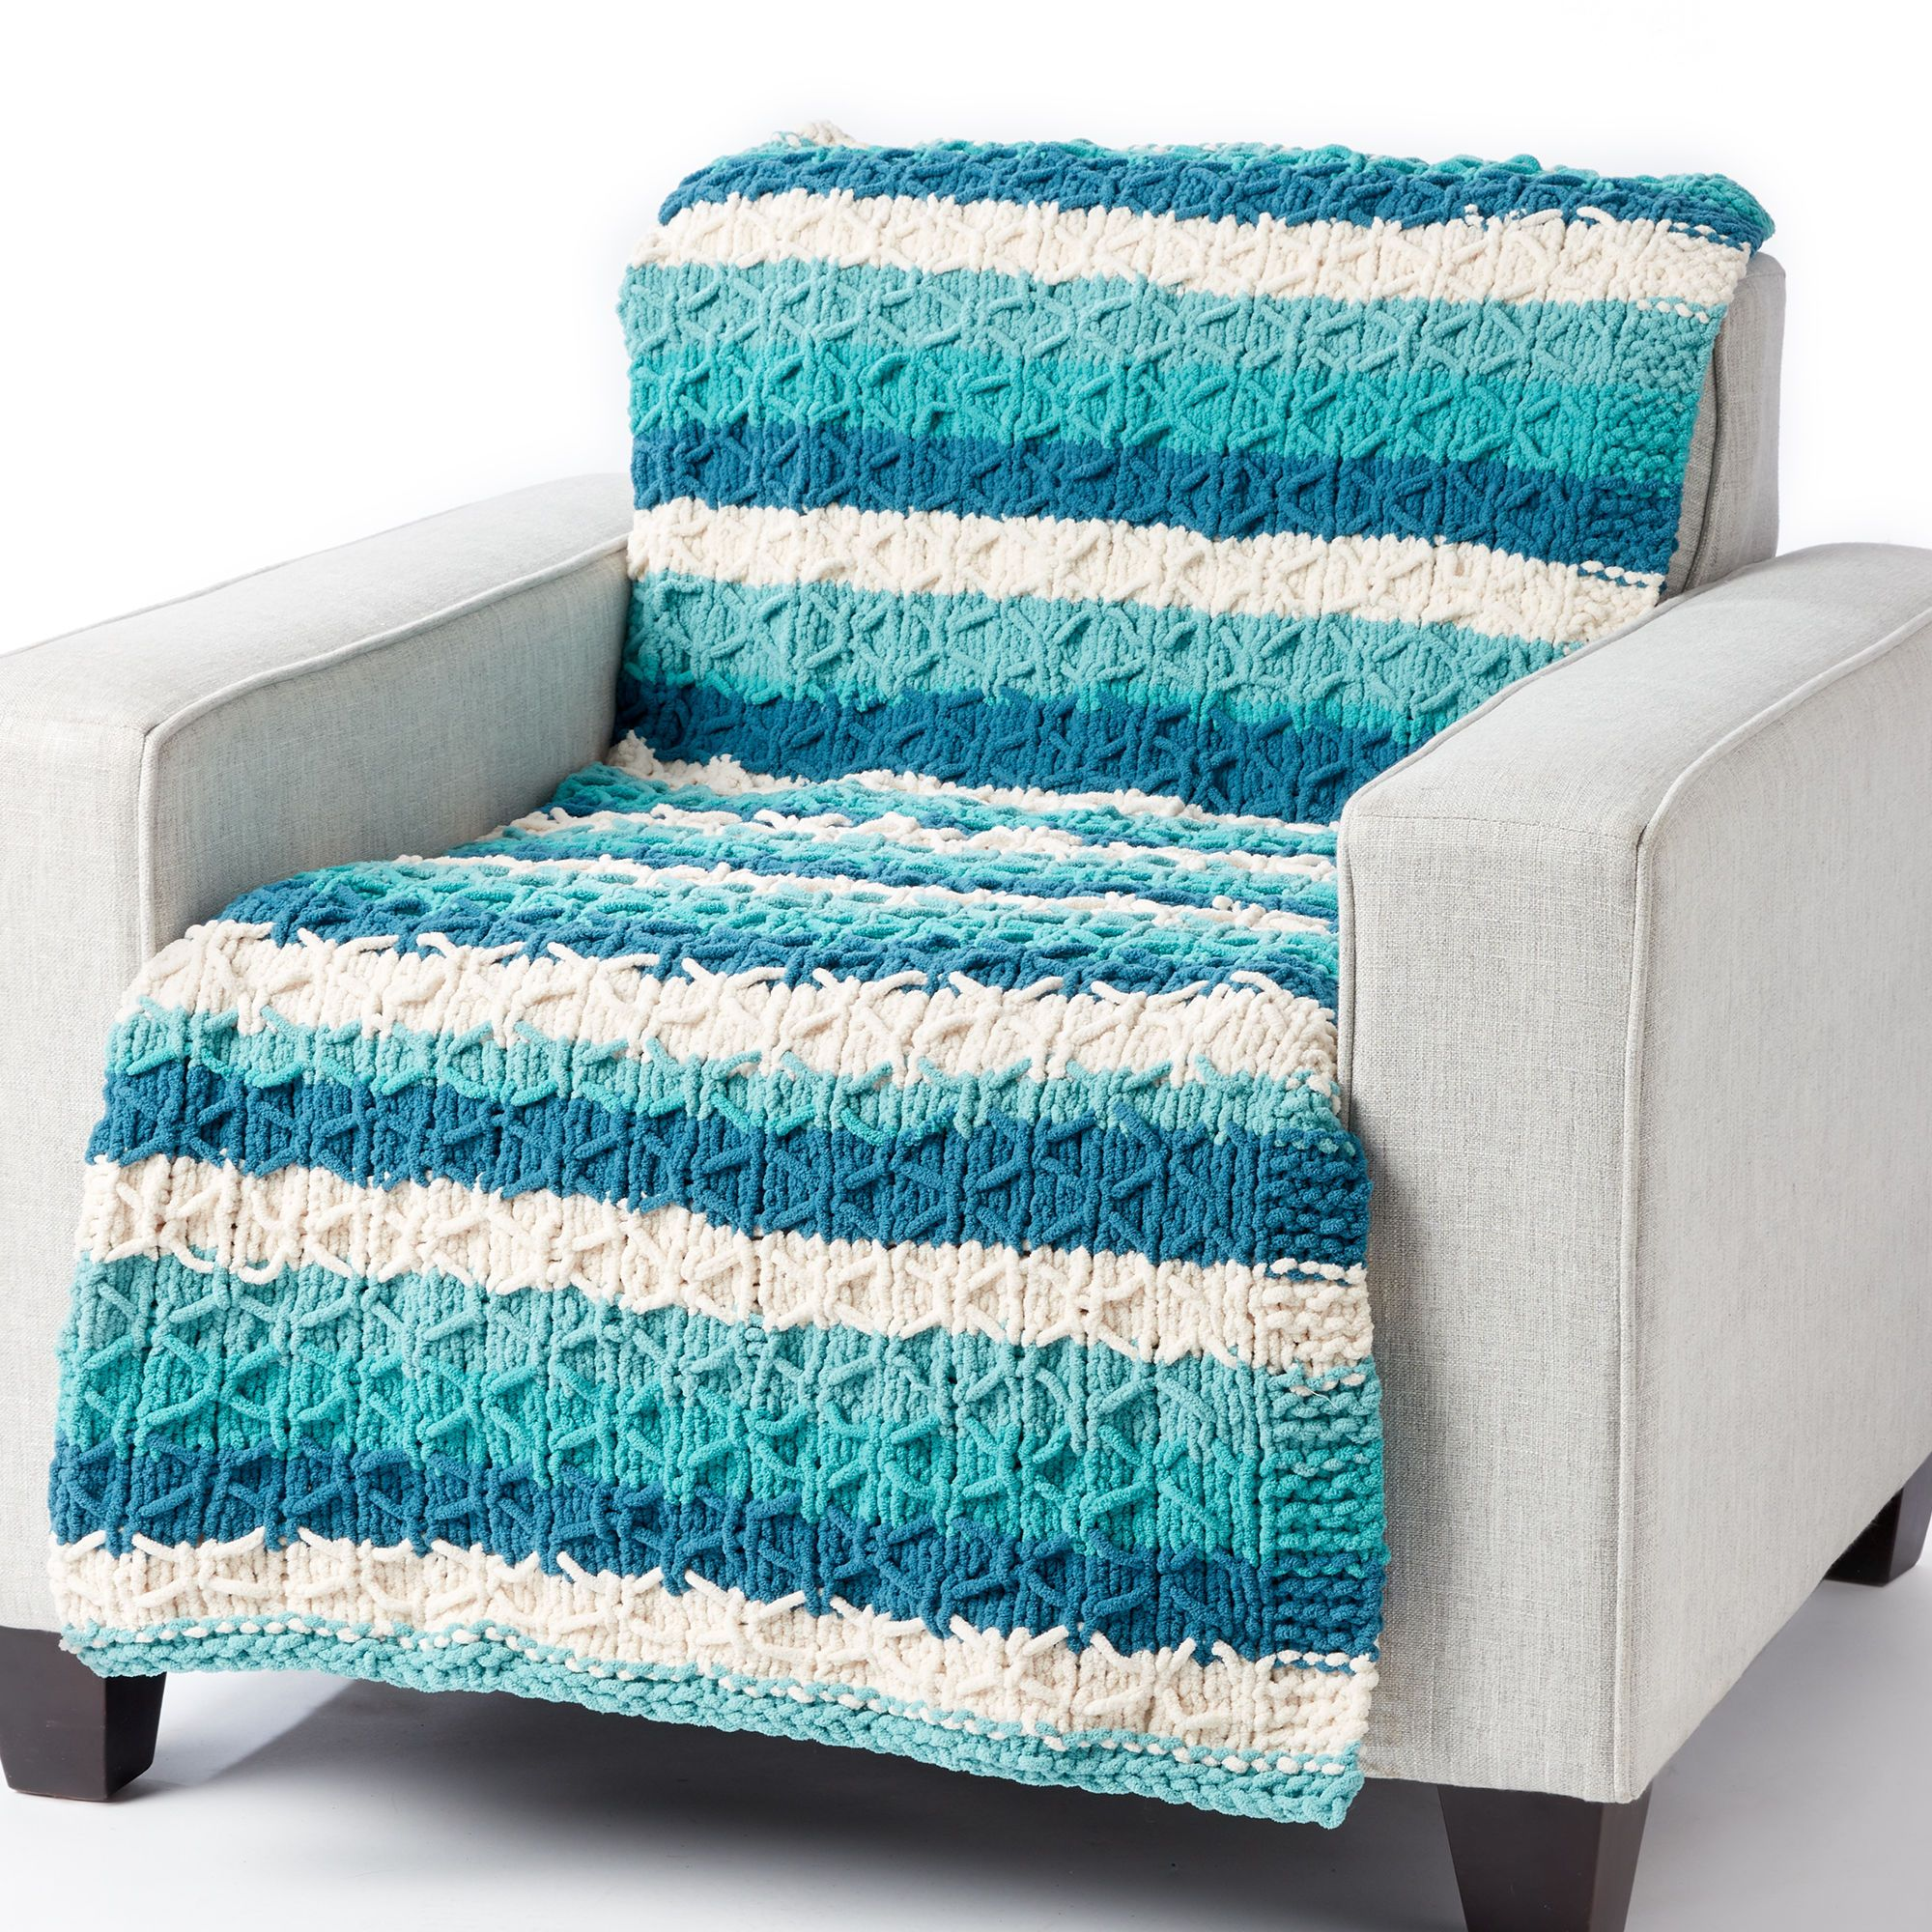 Bernat Knit Quilted Blanket | Yarnspirations | Baby ...